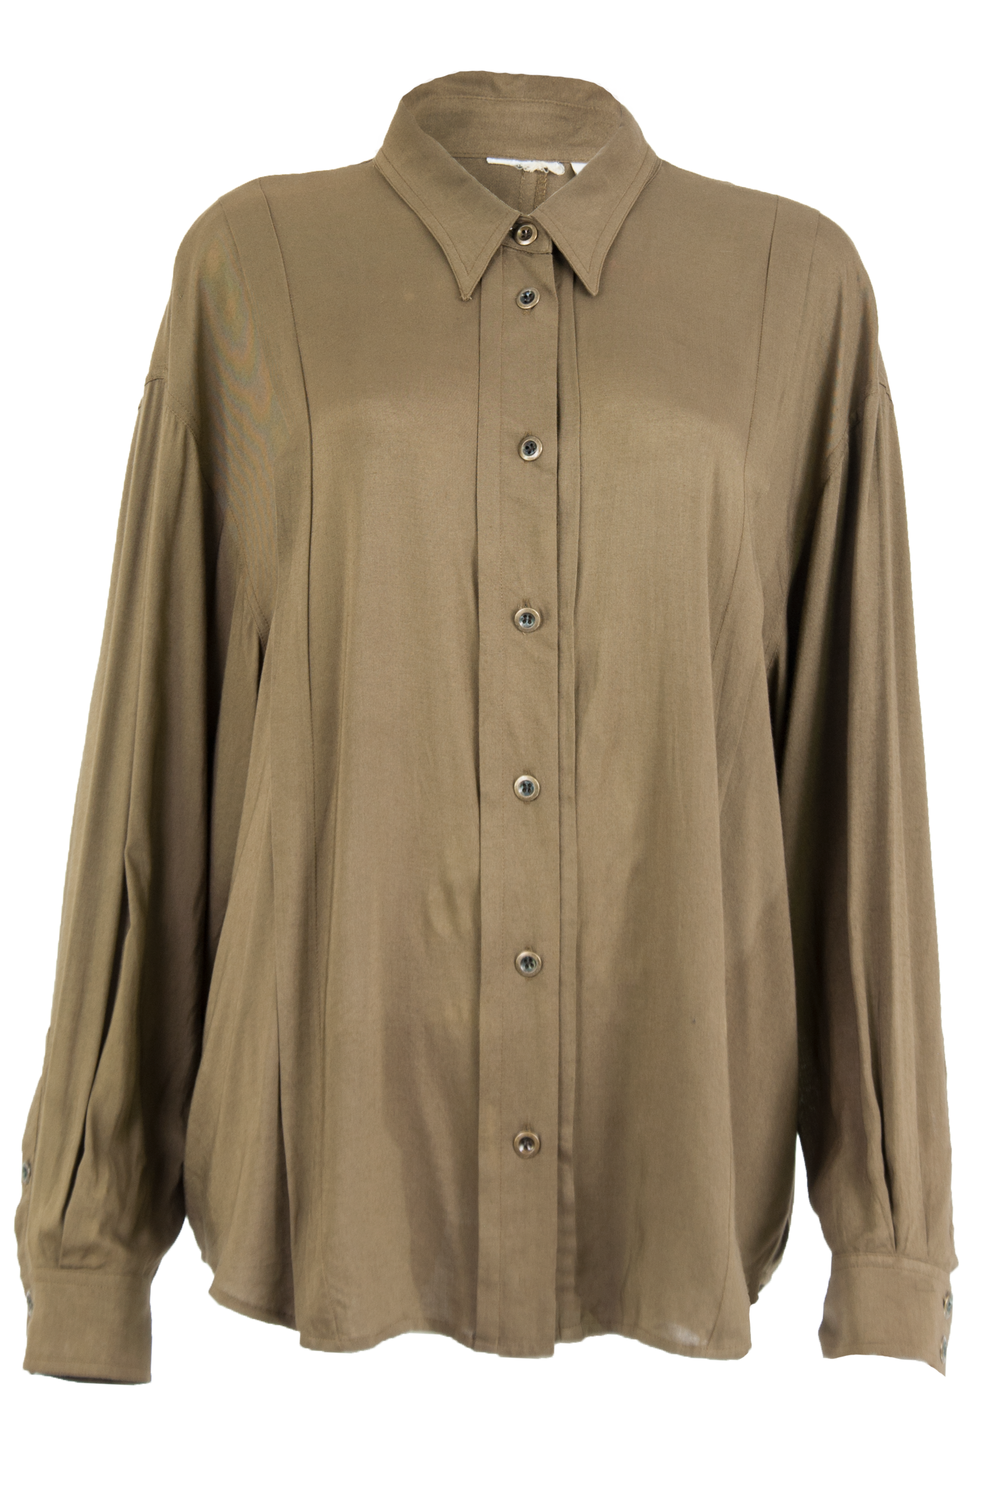 Vintage olive green silky button up featuring pleated front.